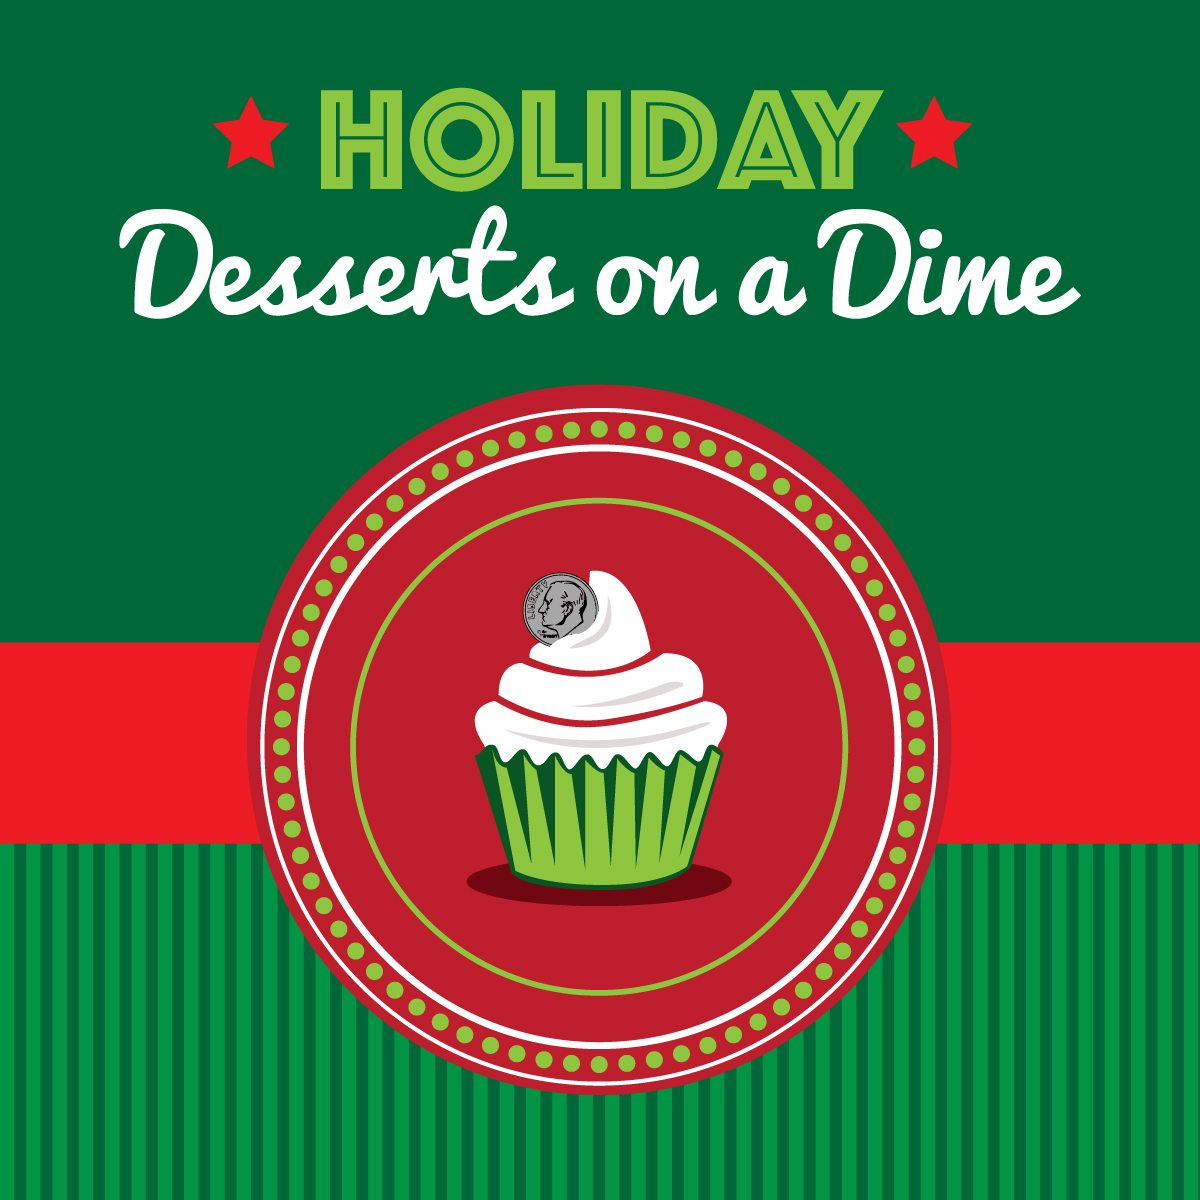 Holiday-Desserts-on-a-Dime-01 (1)